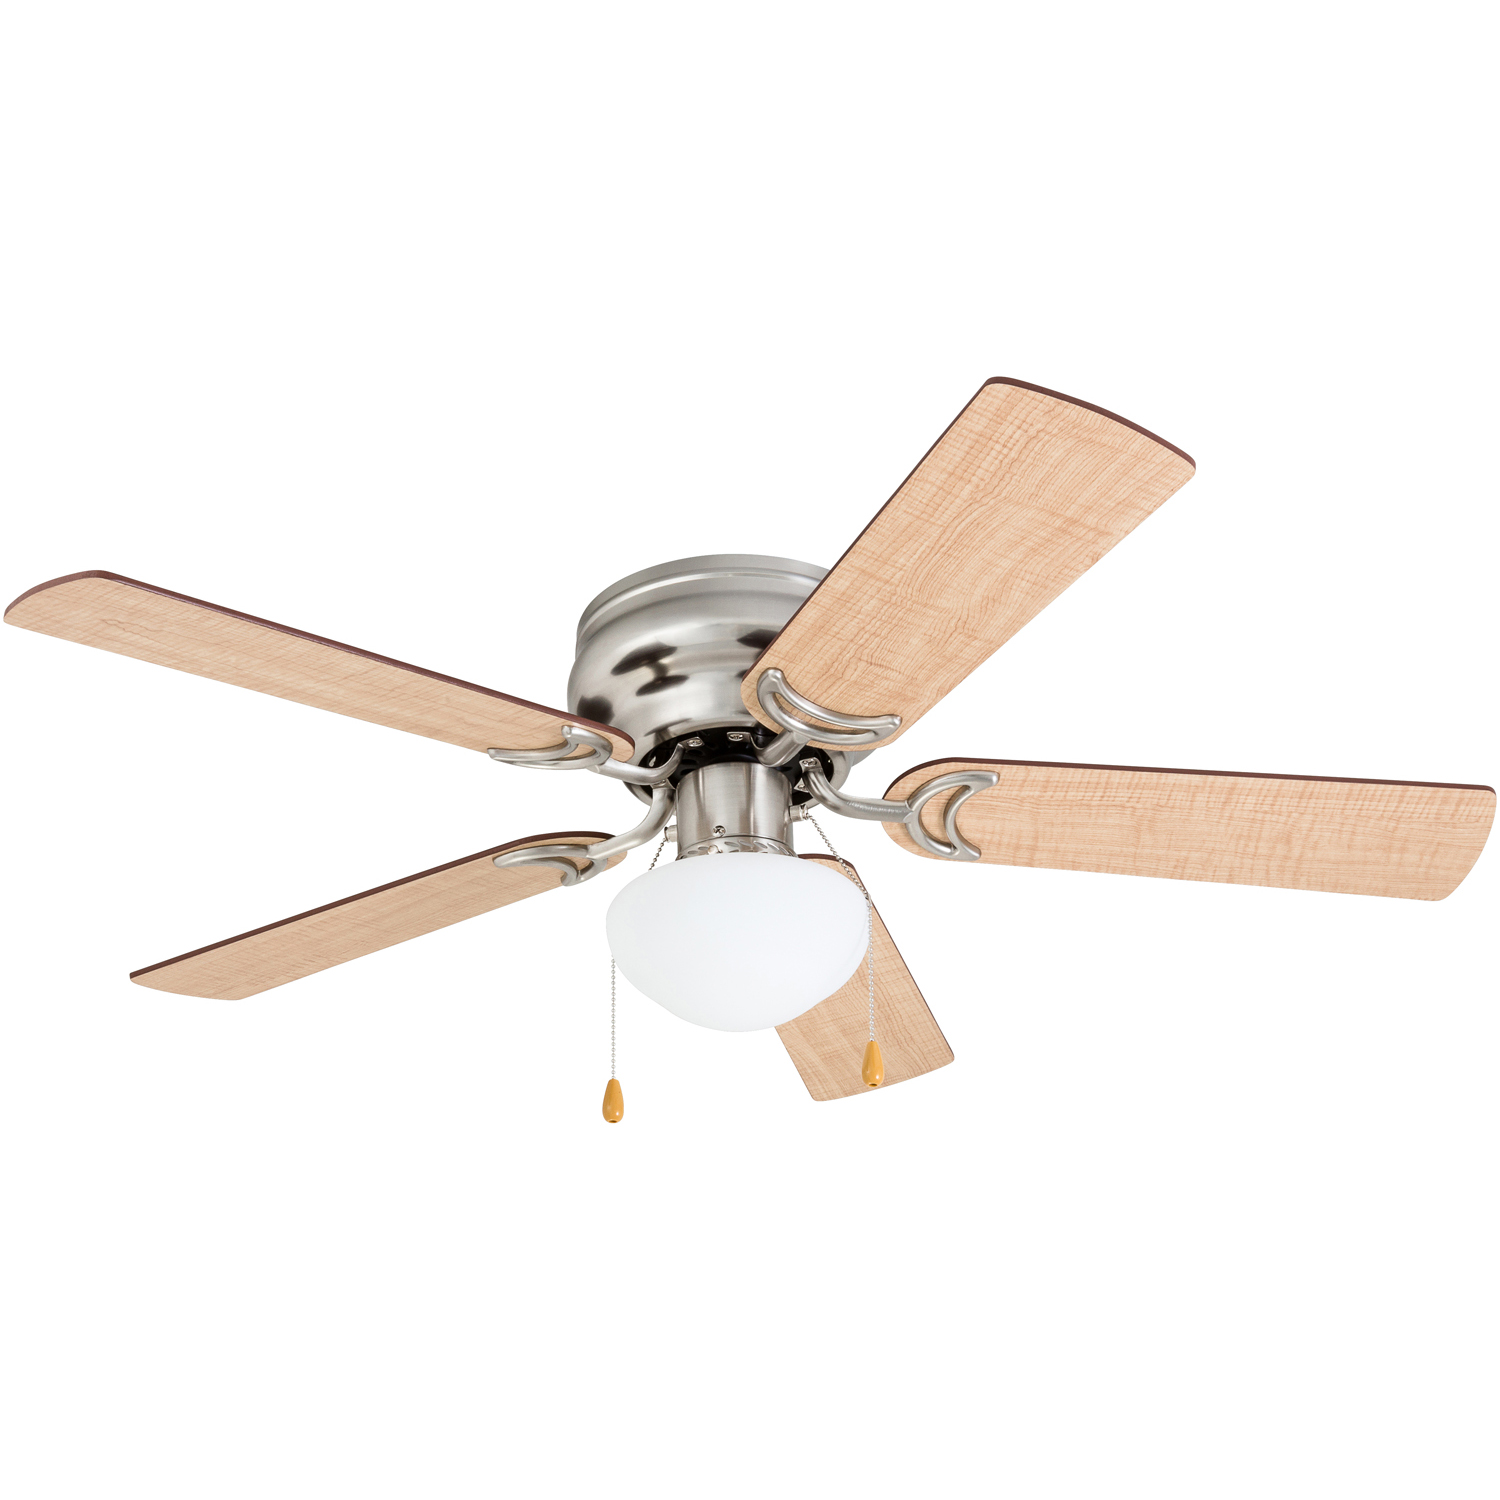 Ceiling fan clipart sounds in motion png stock Ceiling Fans Noise – Lamps png stock